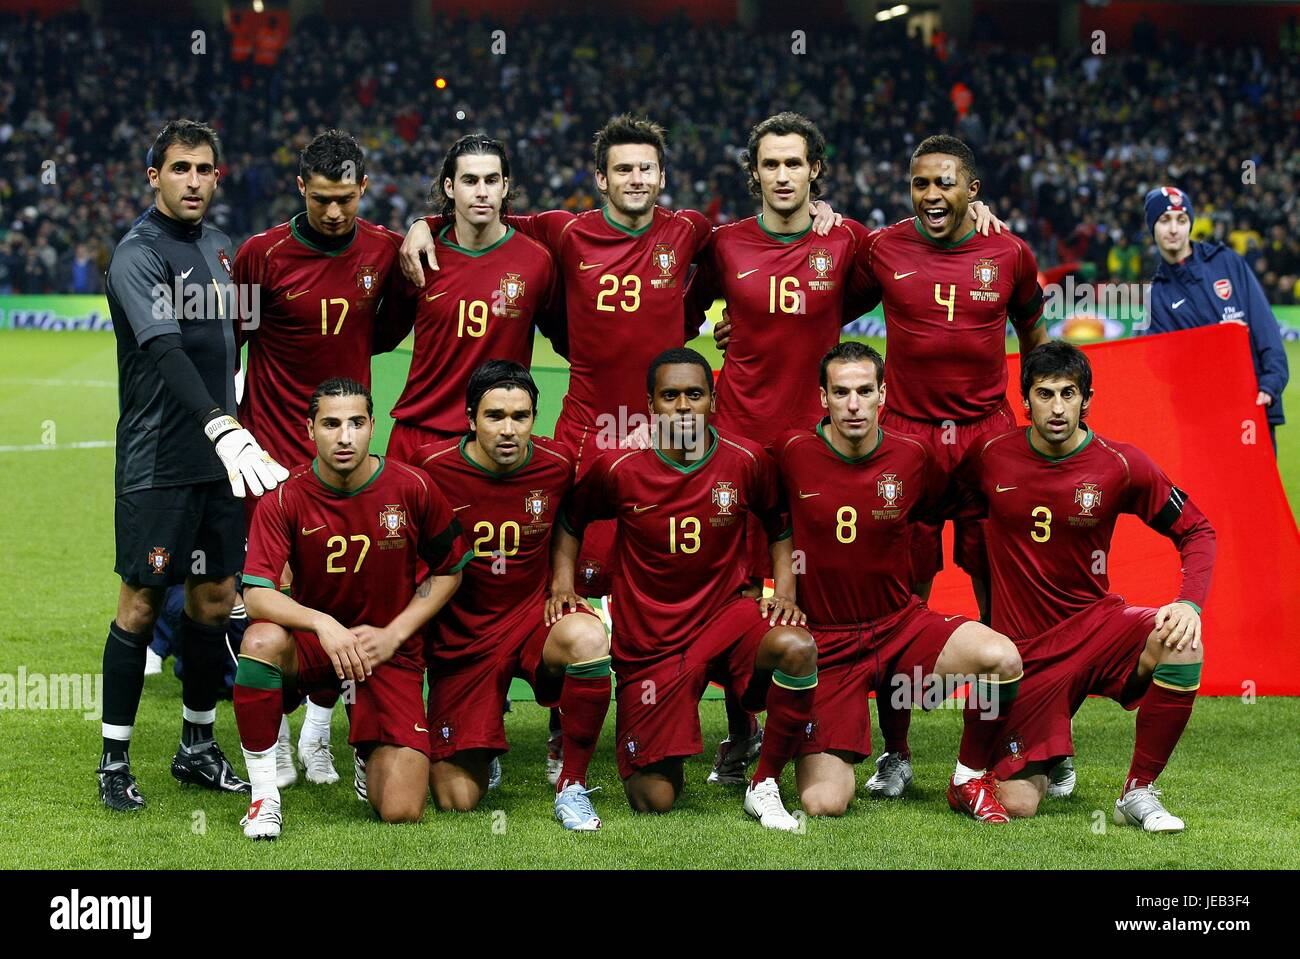 Portugal National Team Stock Photos & Portugal National Team Stock Images - Alamy